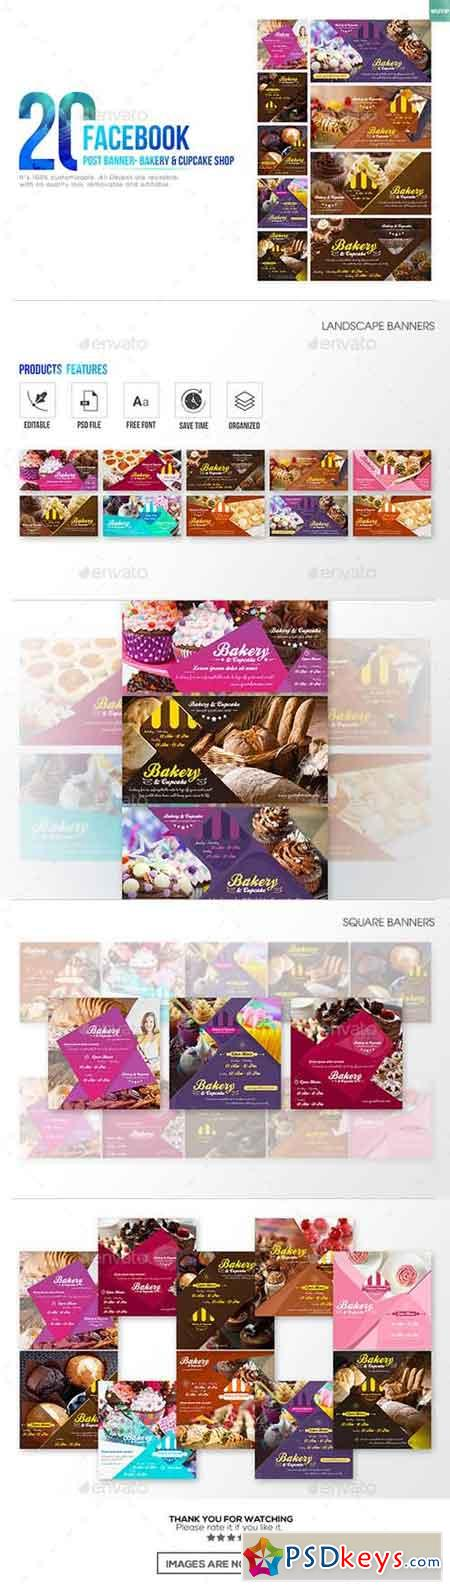 20 Facebook Post Banner - Bakery and Cupcake Shop 19284528